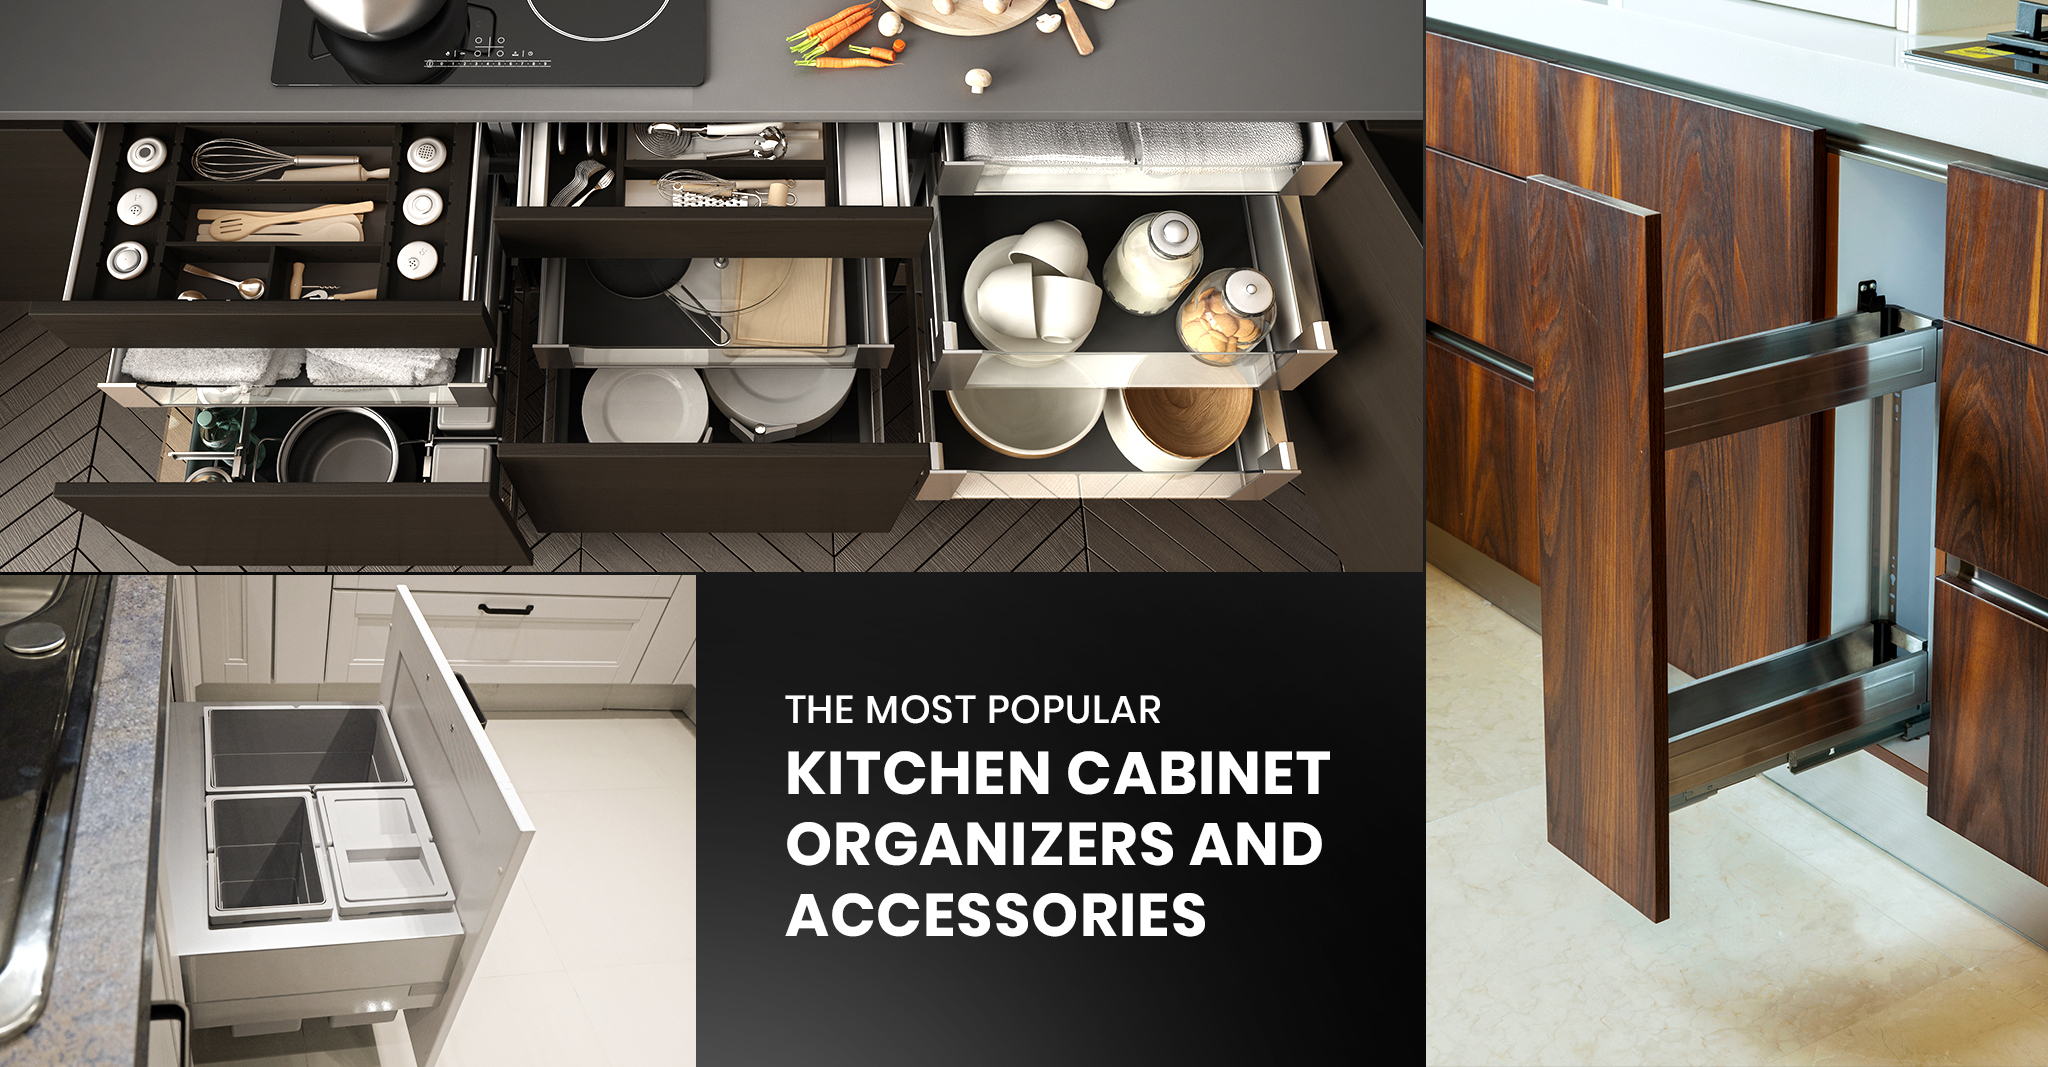 The Most Popular Kitchen Cabinet Organizers and Accessories